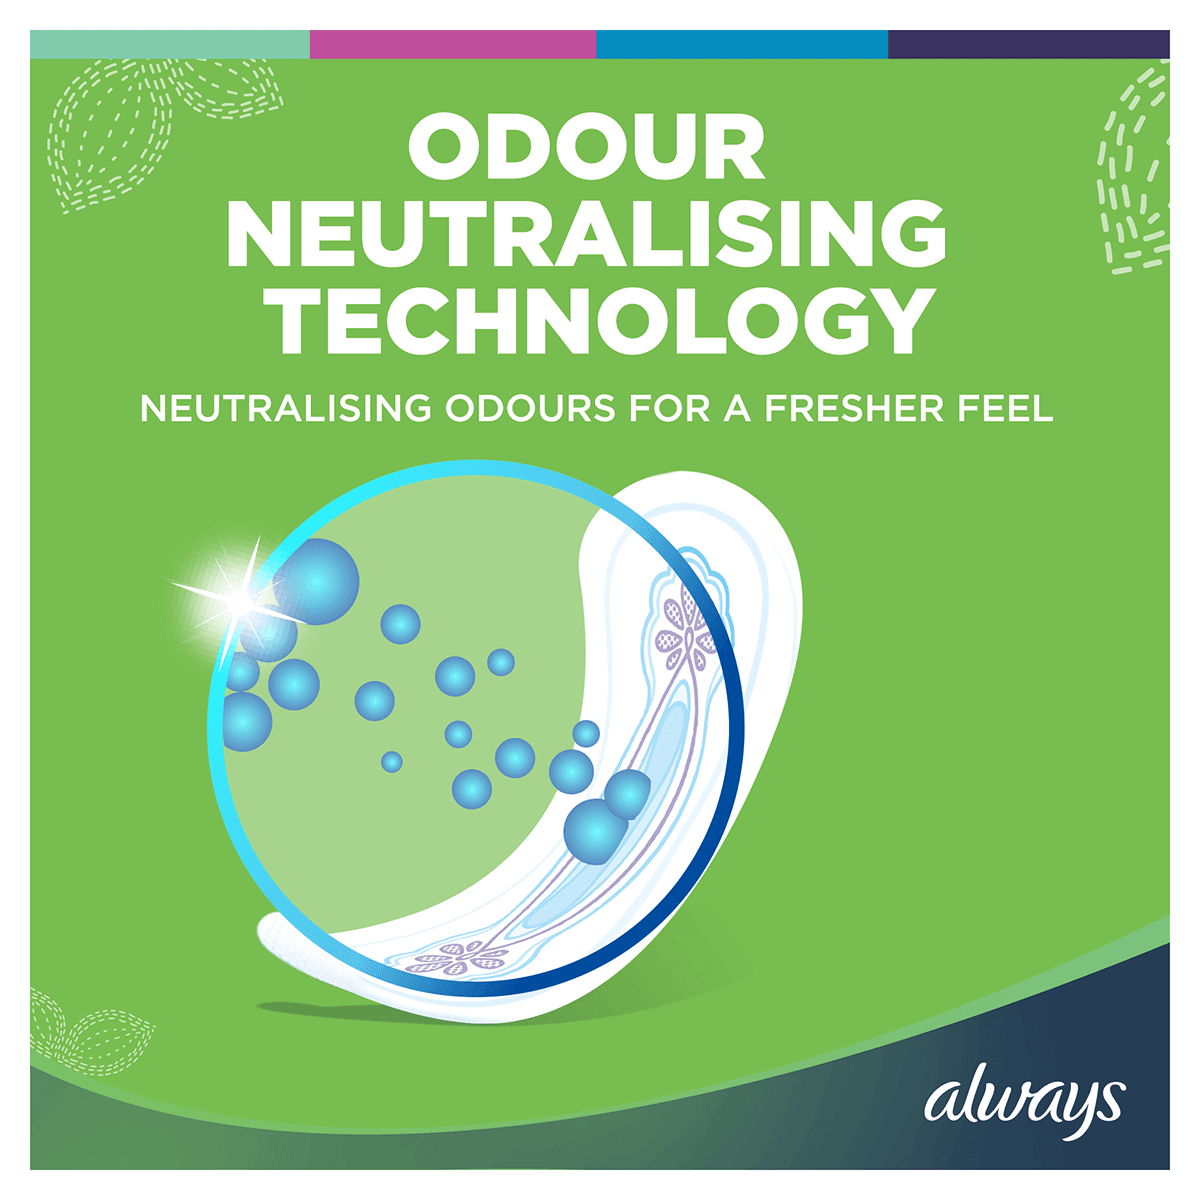 ALWAYS Ultra Normal Sanitary Towel Menstrual Cycle Odour Neutralising Technology